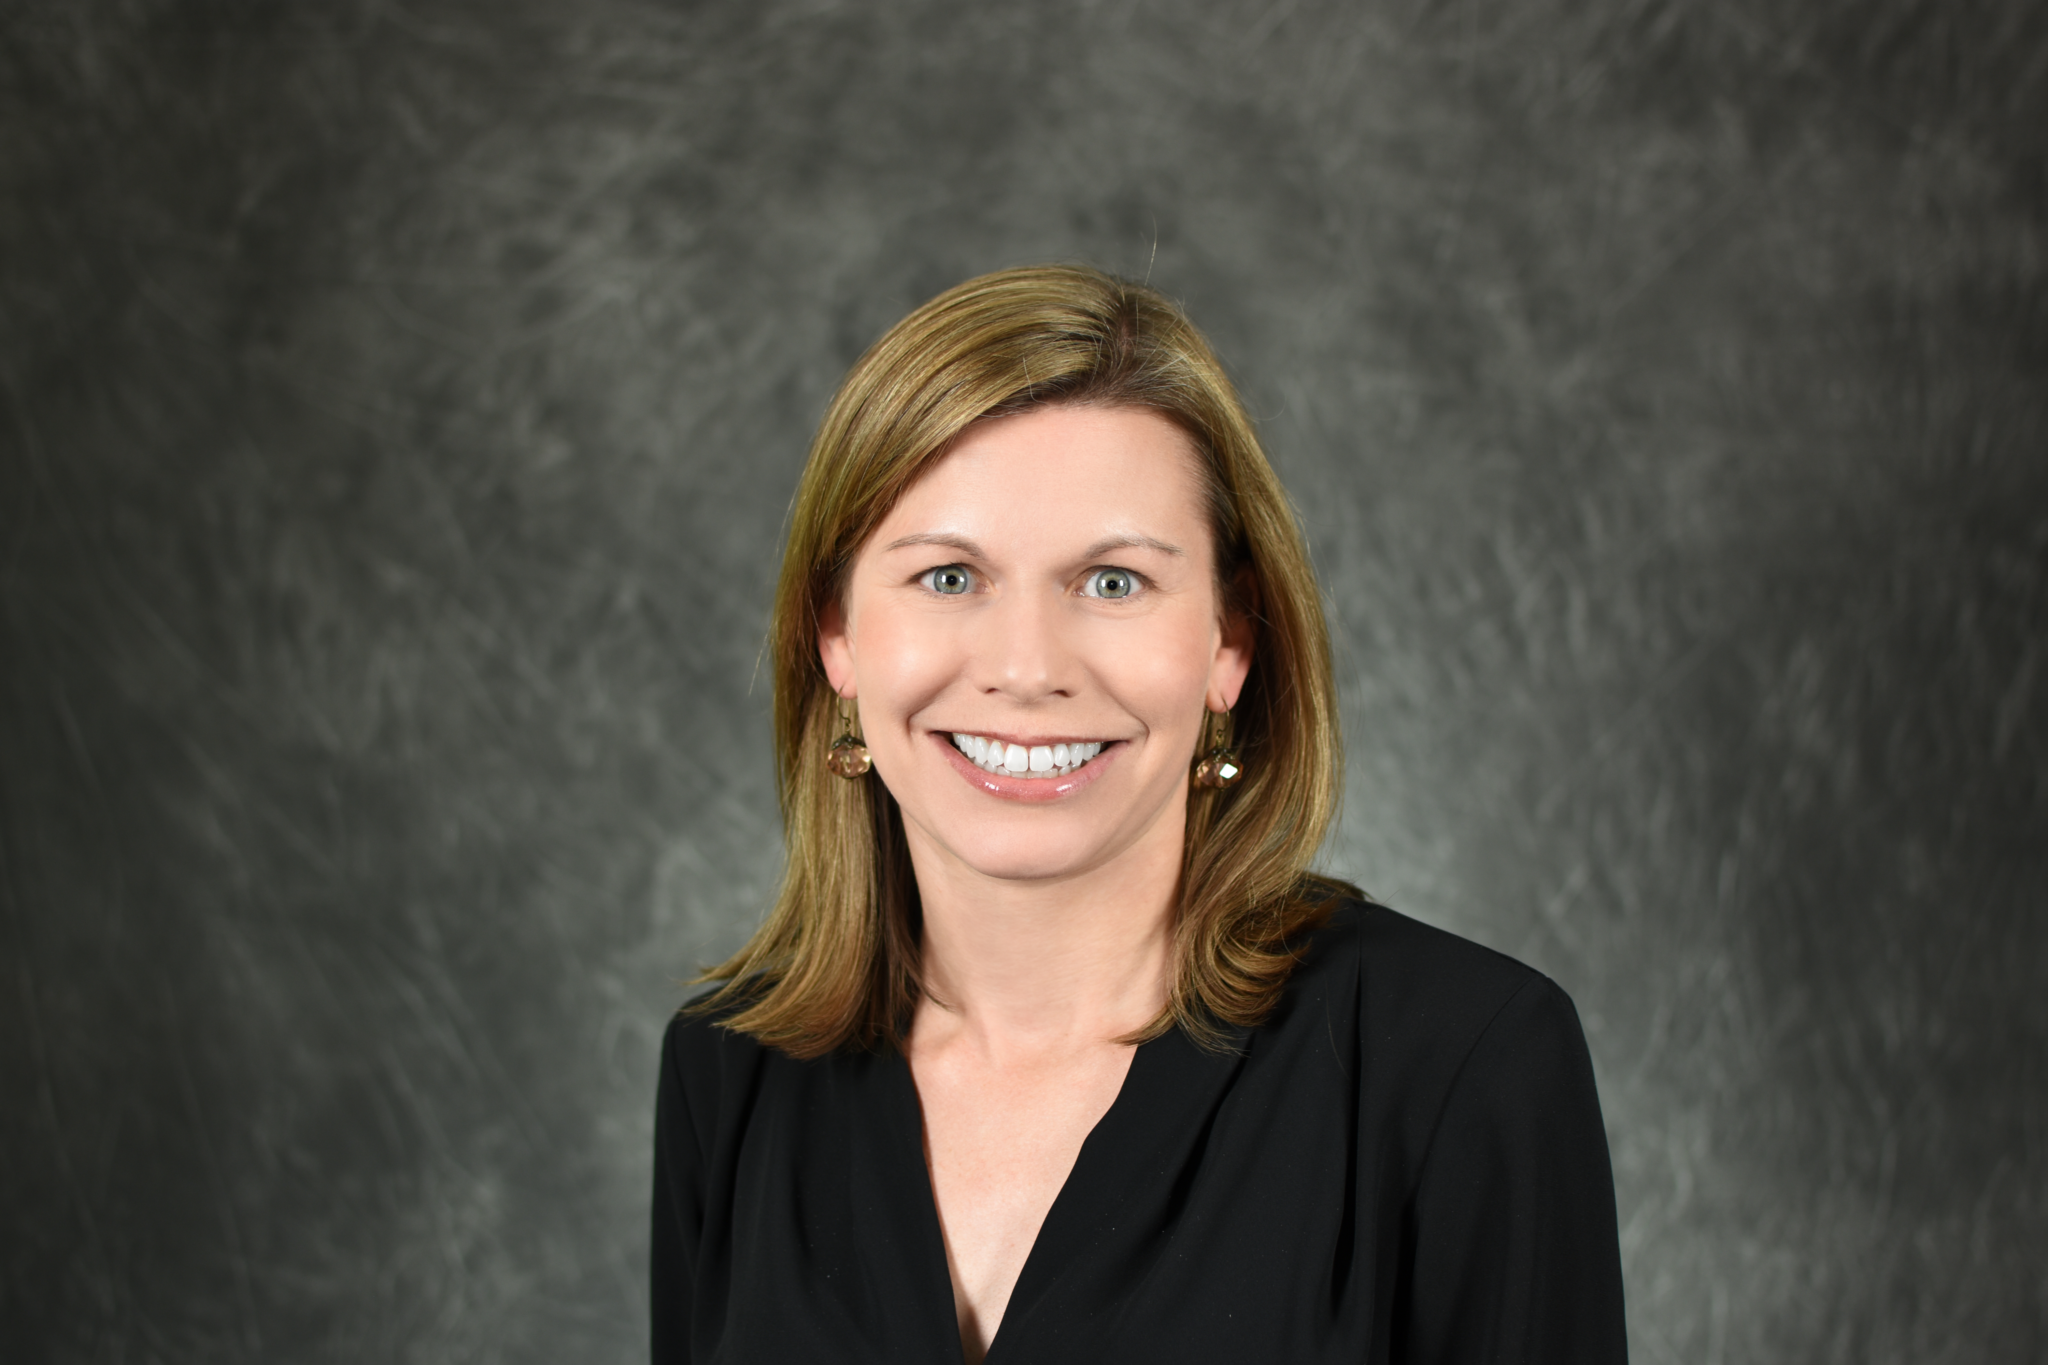 Liz Kuhn Tomka named Vice President of the Education and Career Resources department